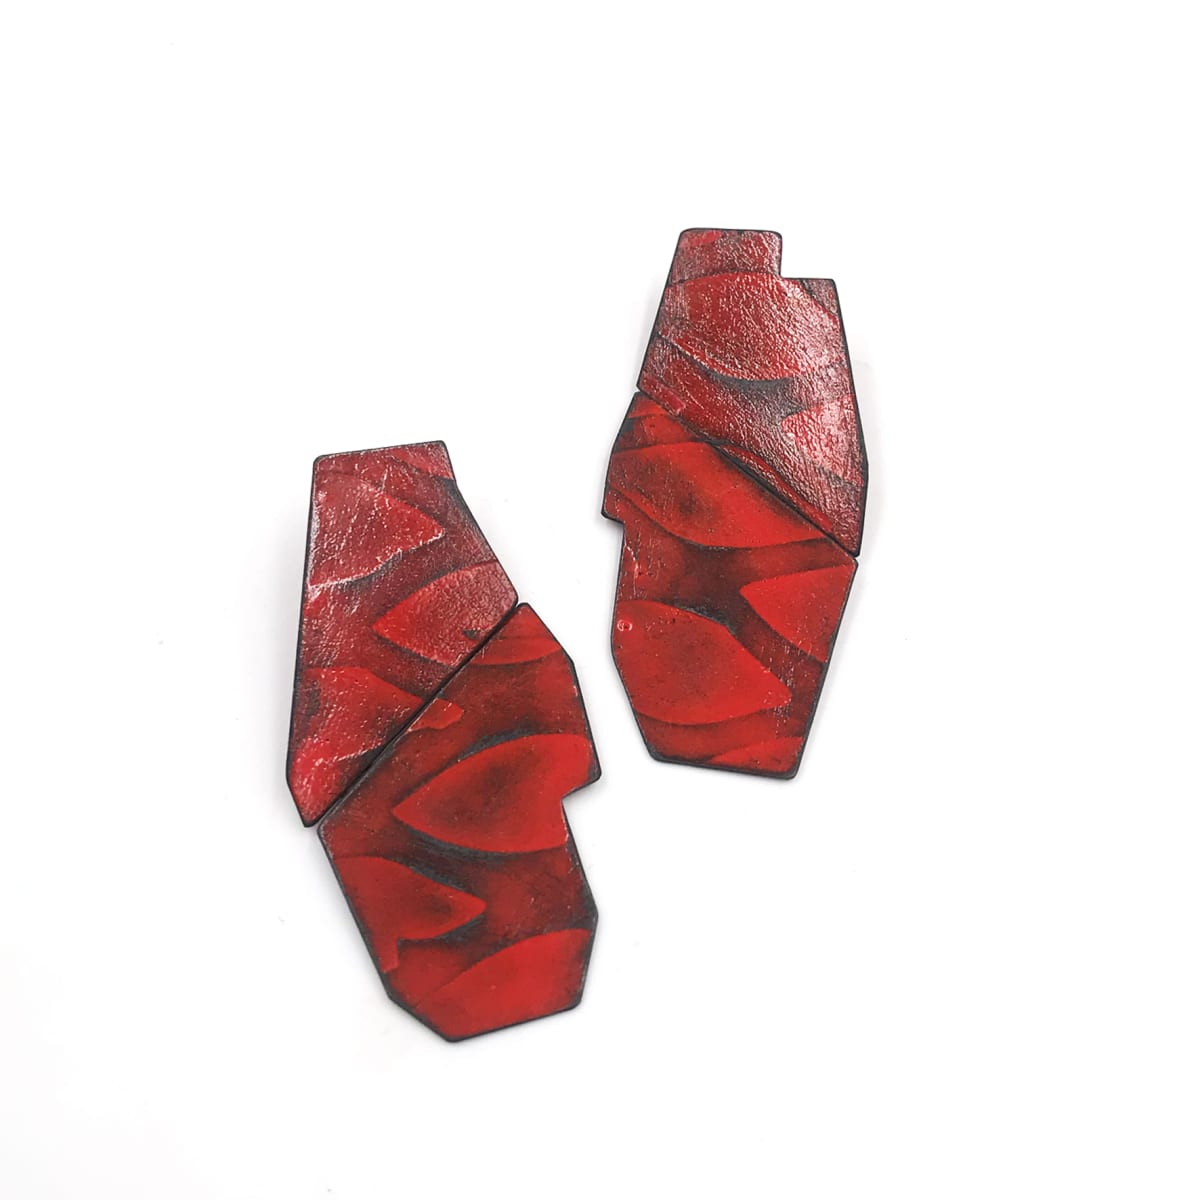 Kat Cole, Boundary Line Earrings (Red Etch Grates)